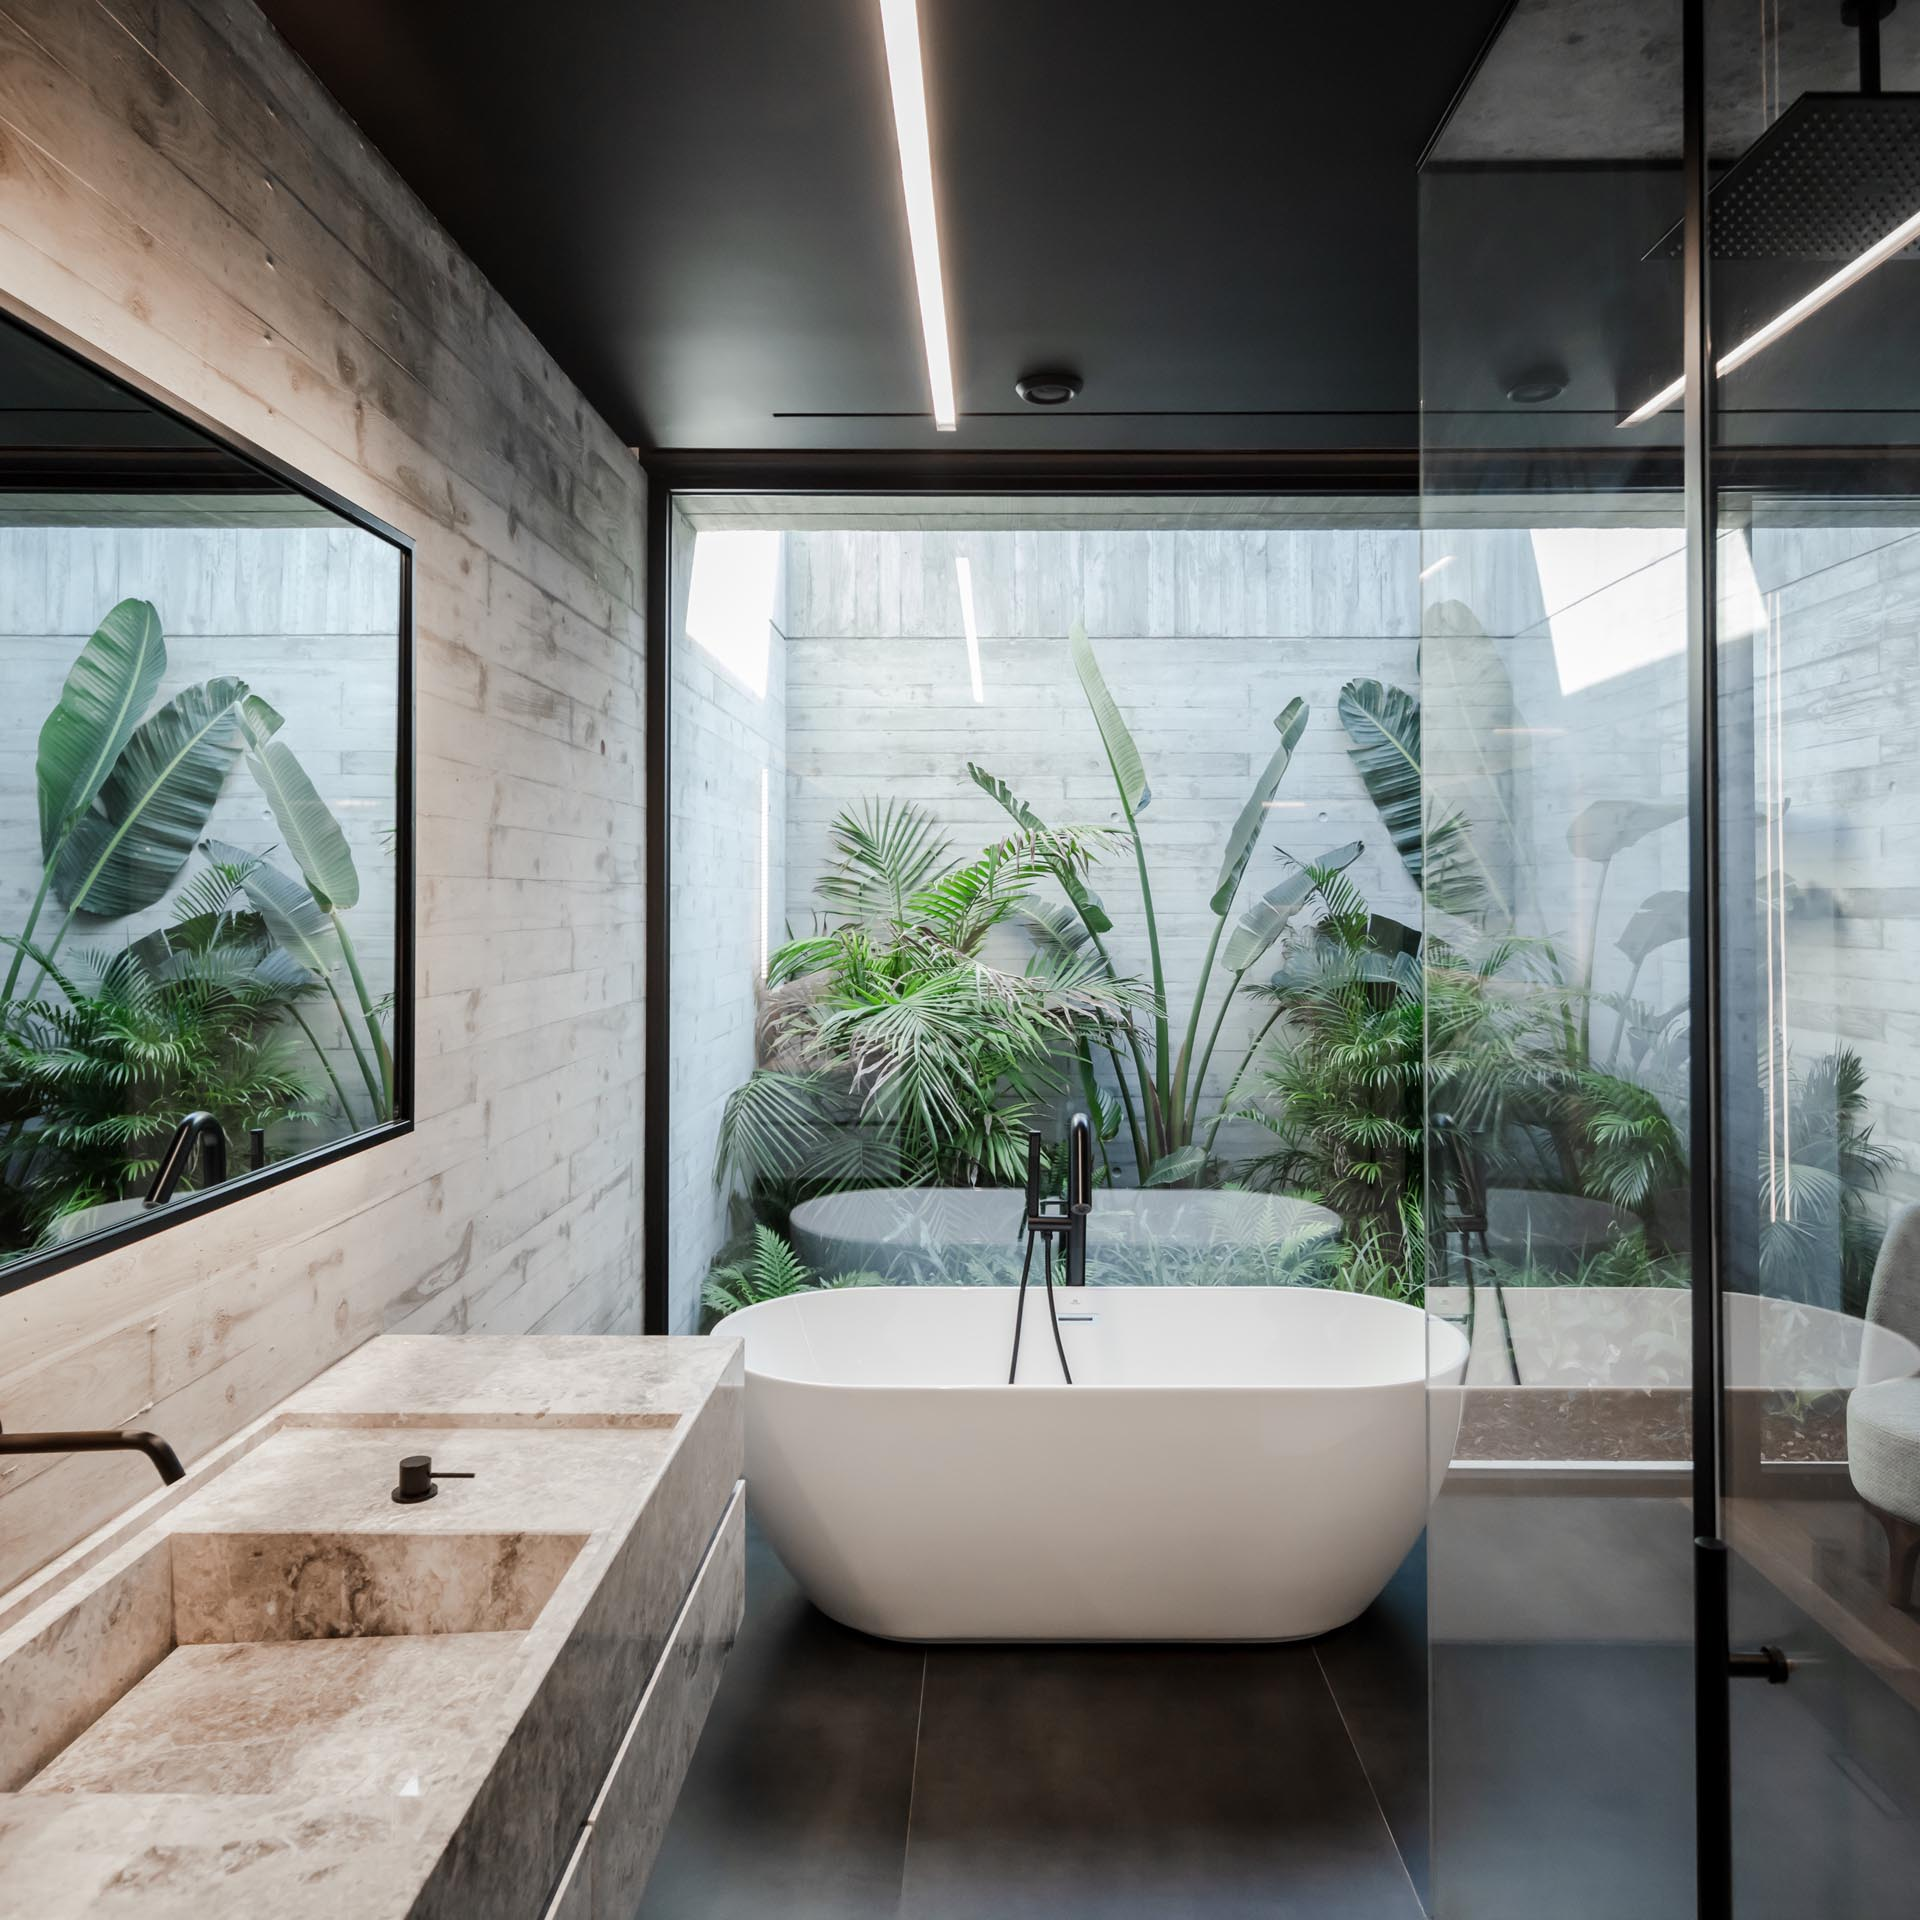 In this modern bathroom, there's a glass wall behind the freestanding bathtub that provides views of a tropical garden.